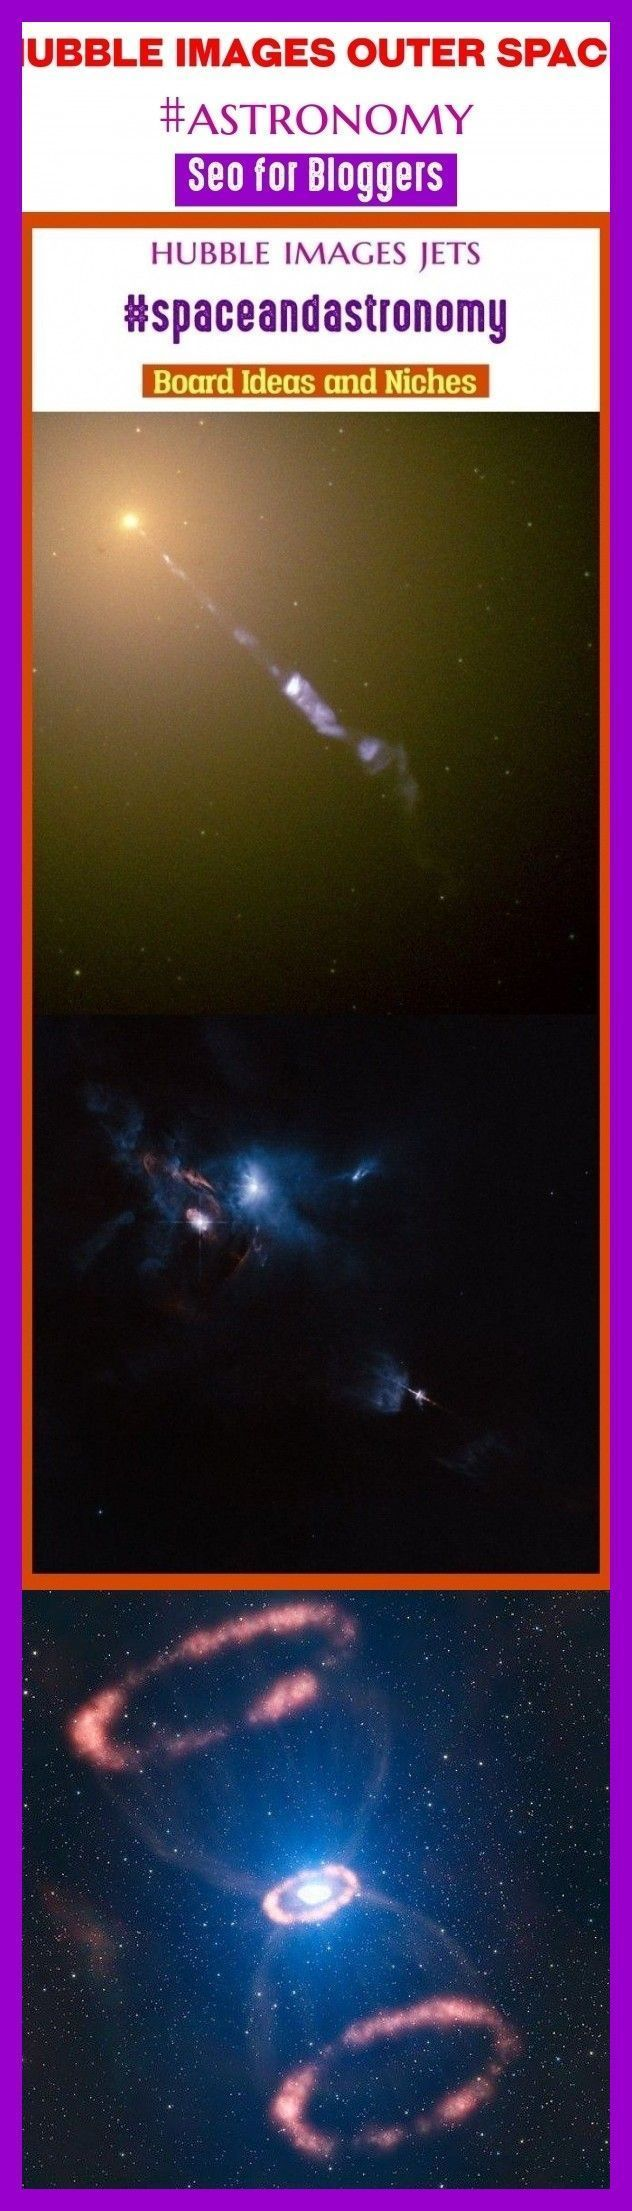 Life science space hubble pictures space hubble